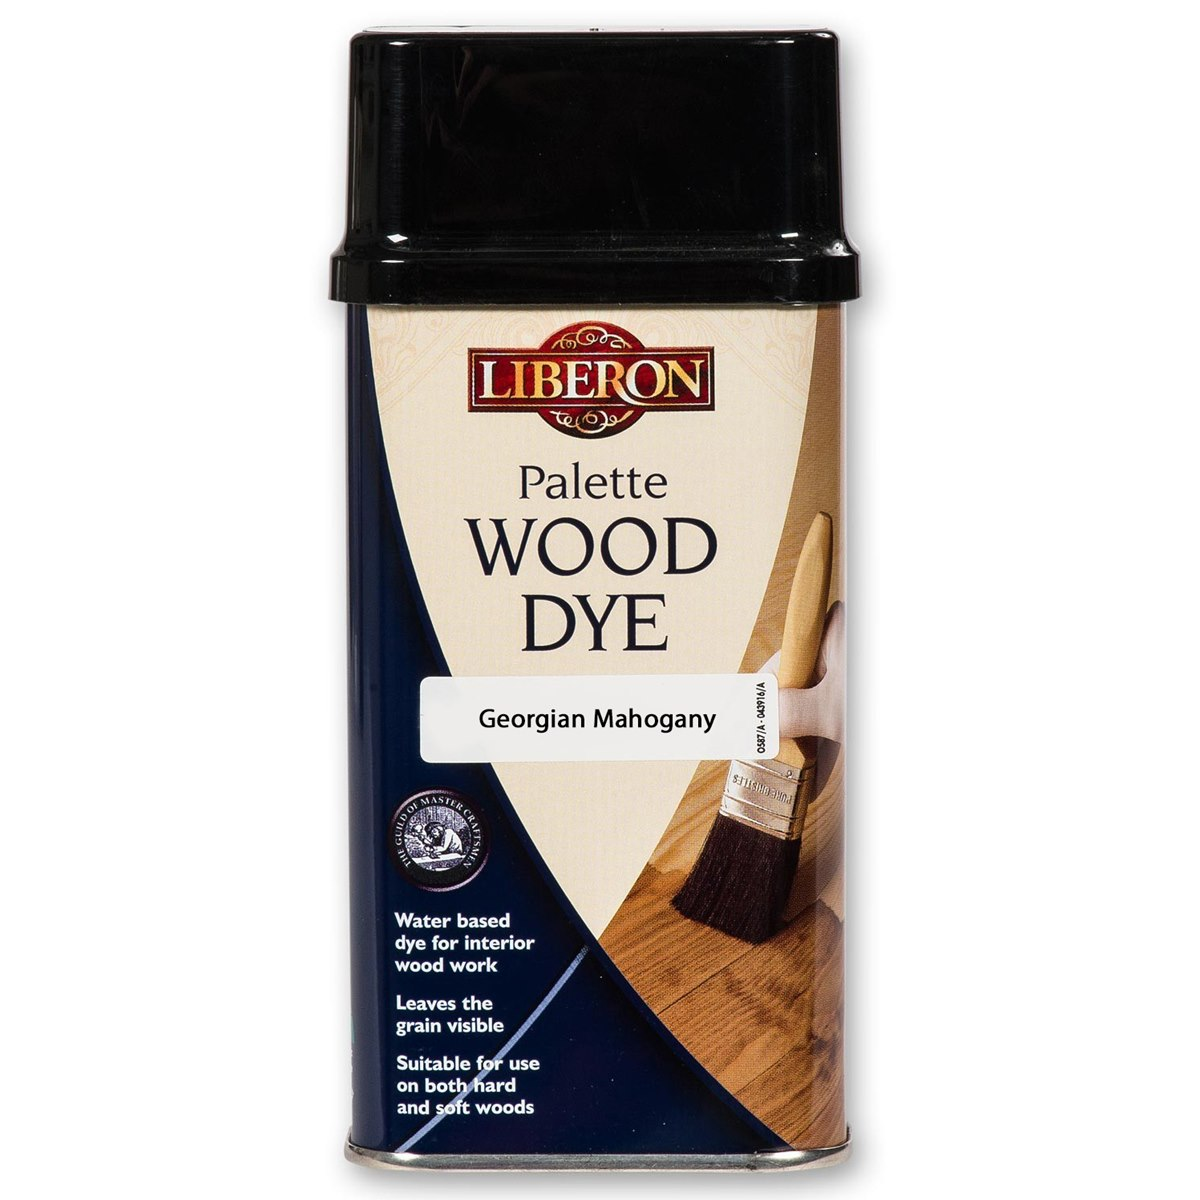 Liberon Palette Wood Dye Georgian Mahogany 250ml